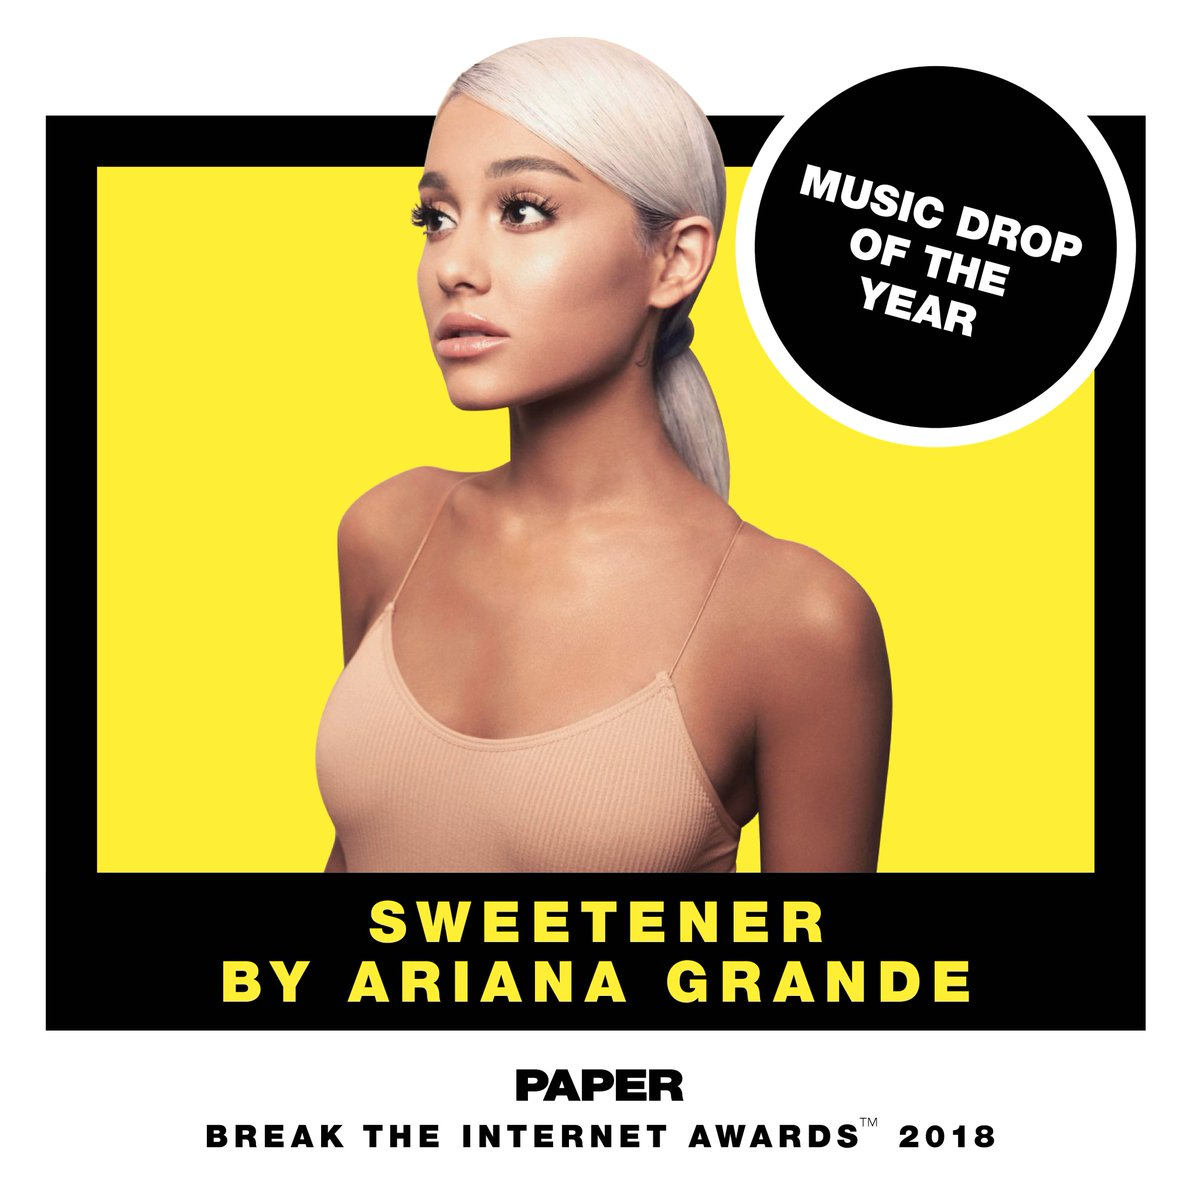 .@ArianaGrande for music drop of the year! #sweetener #breaktheinternet https://t.co/Fnkqv7FGh6